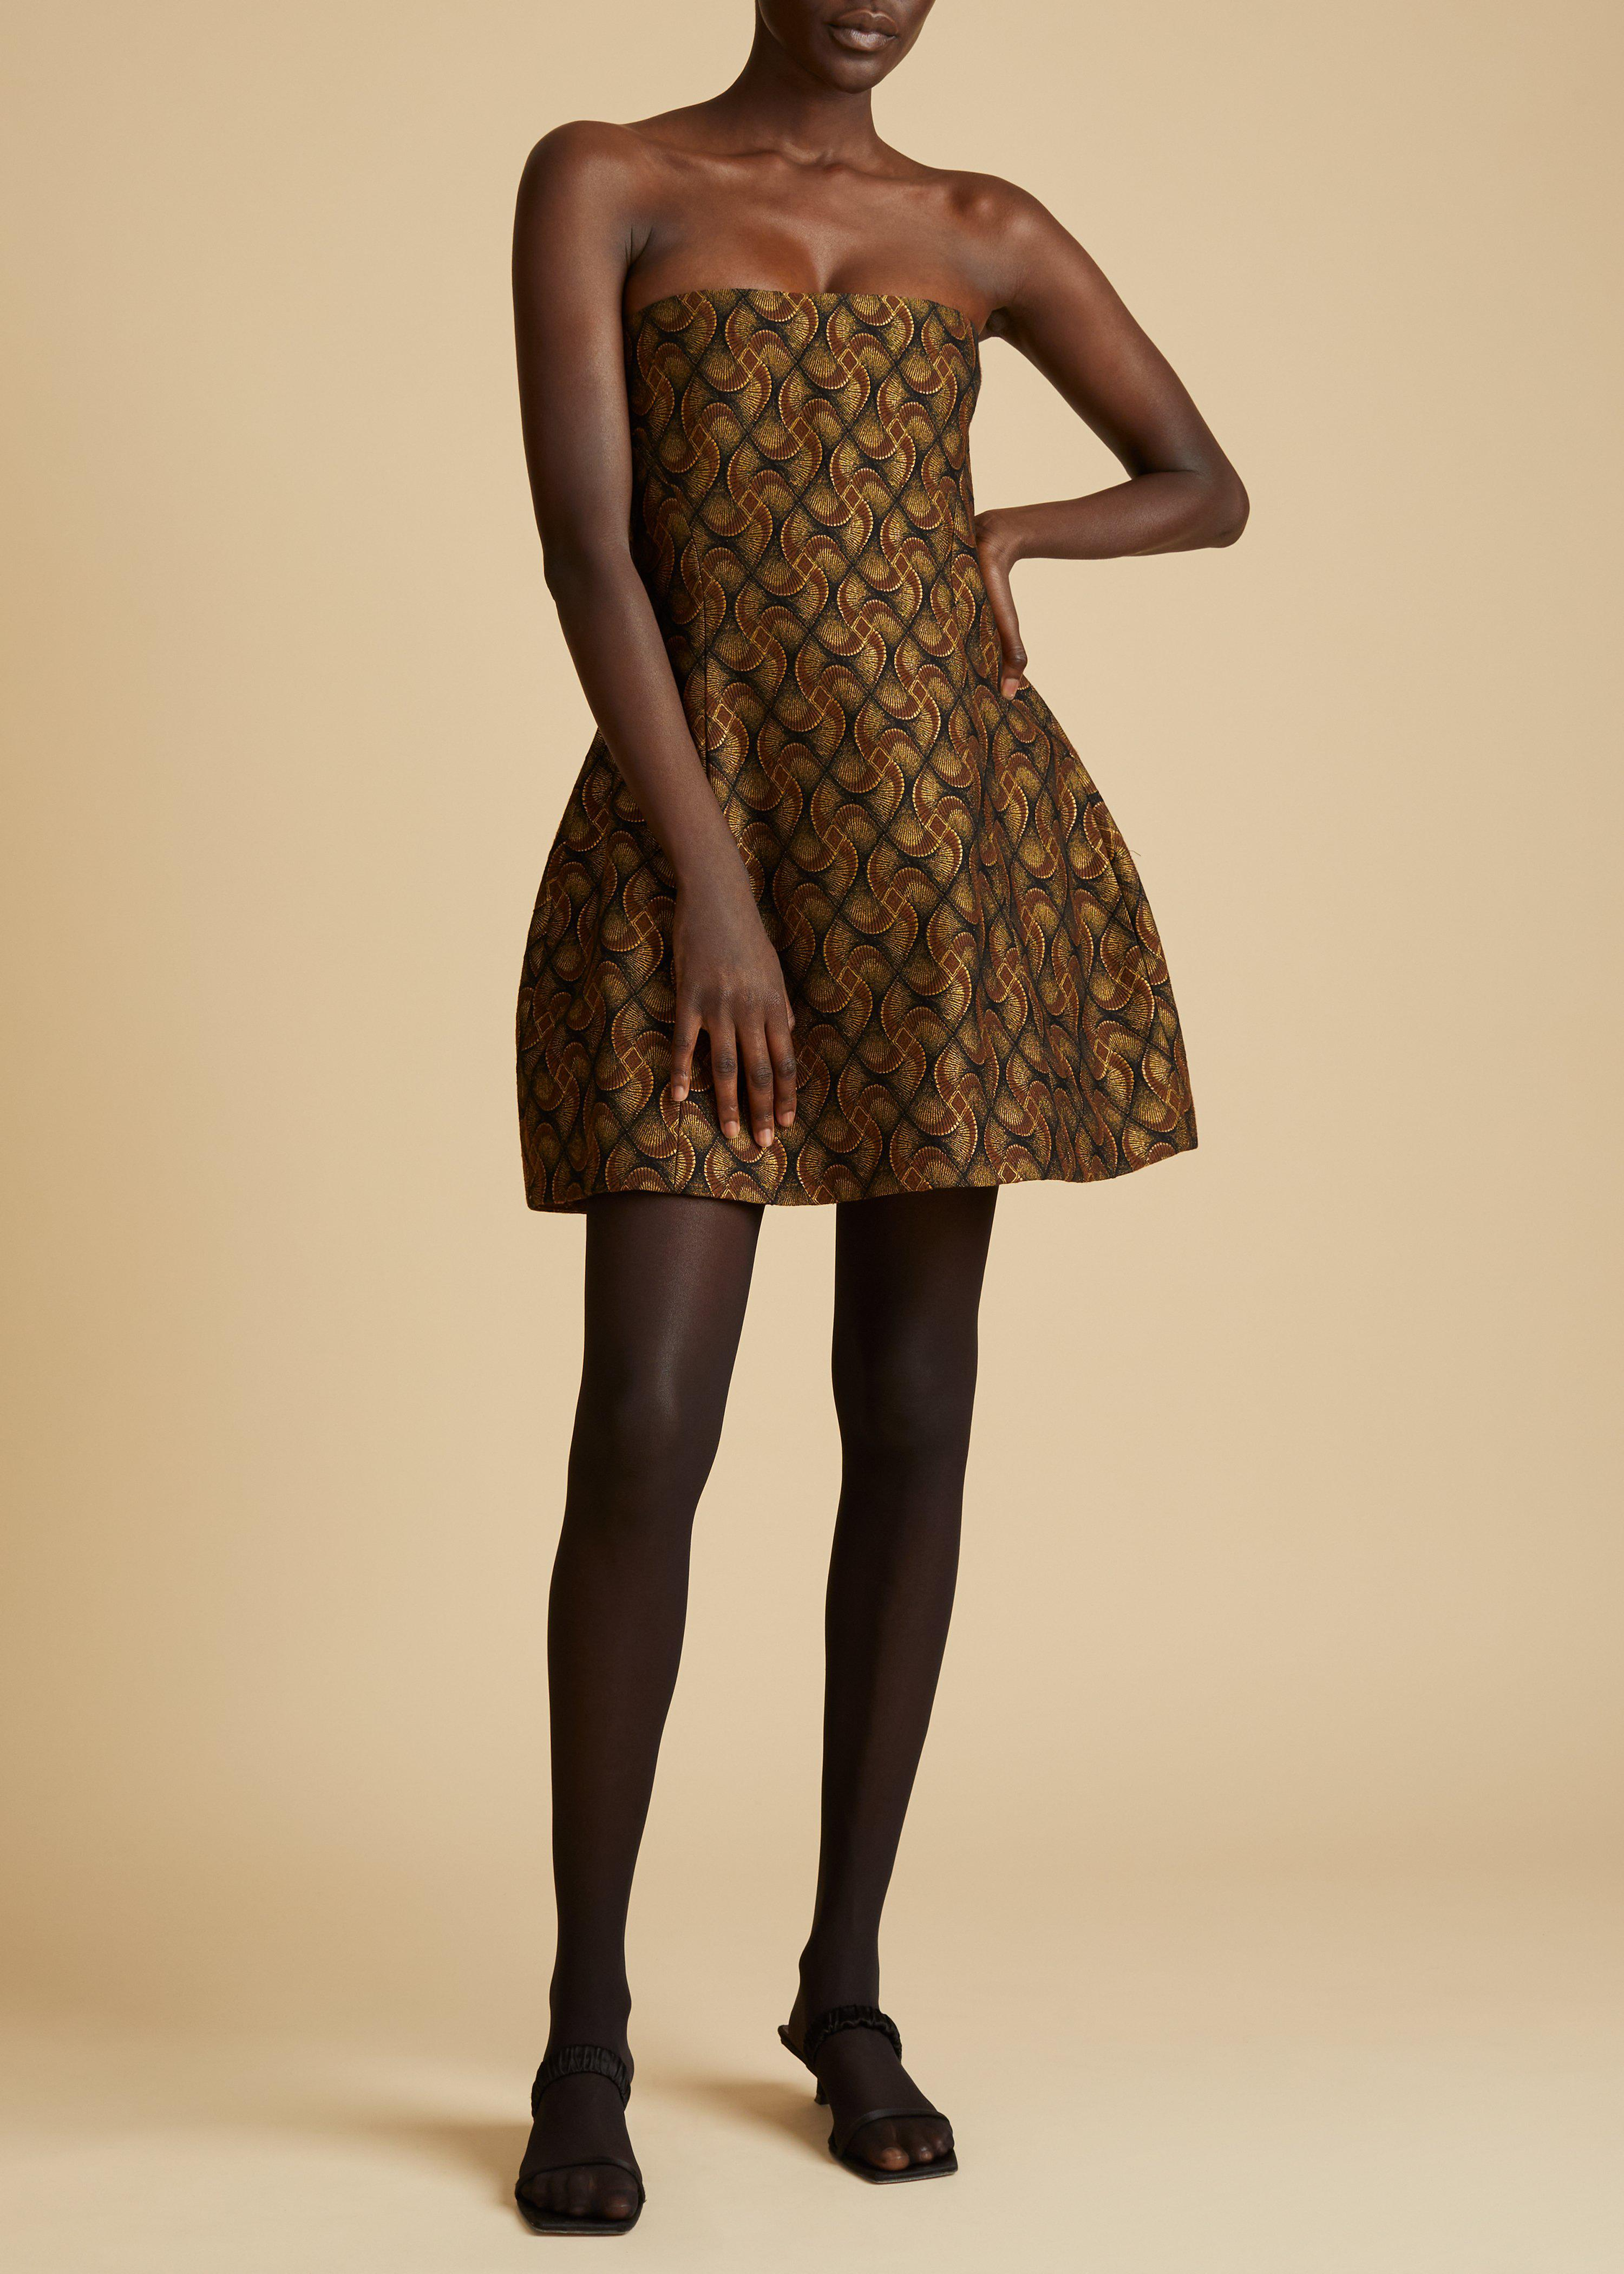 The Ginger Dress in Gold Jacquard